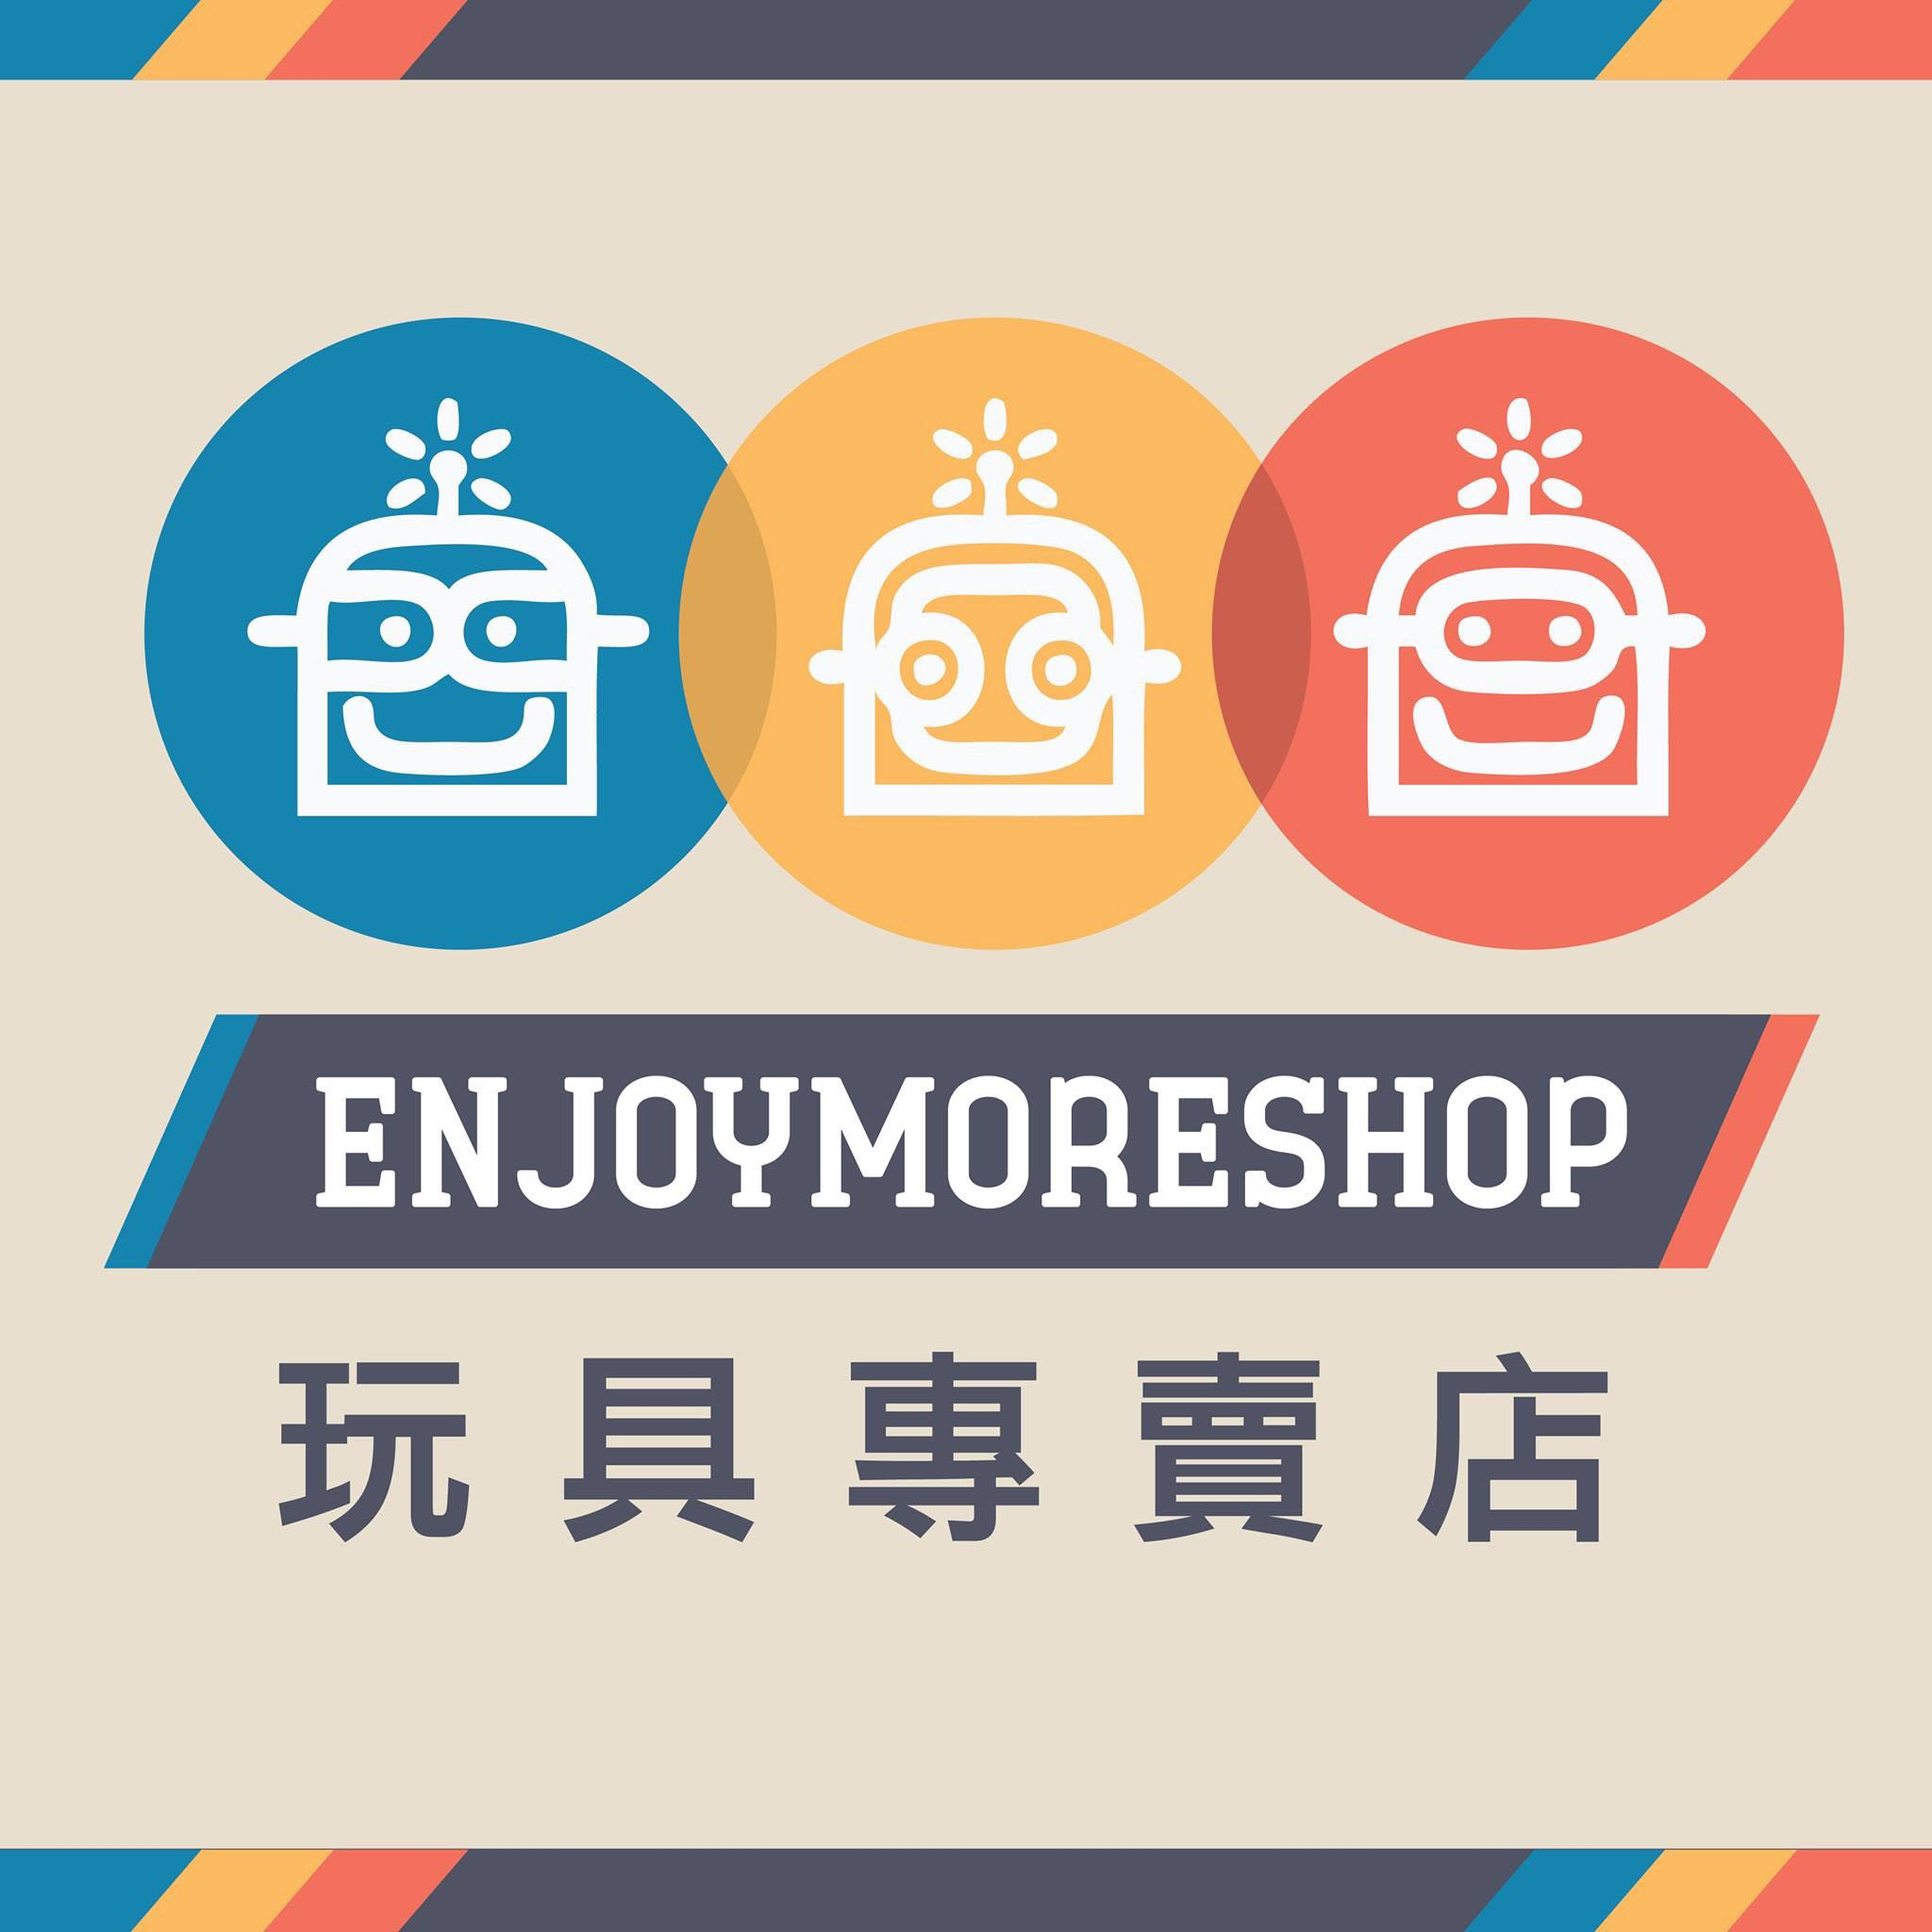 enjoymoreshop